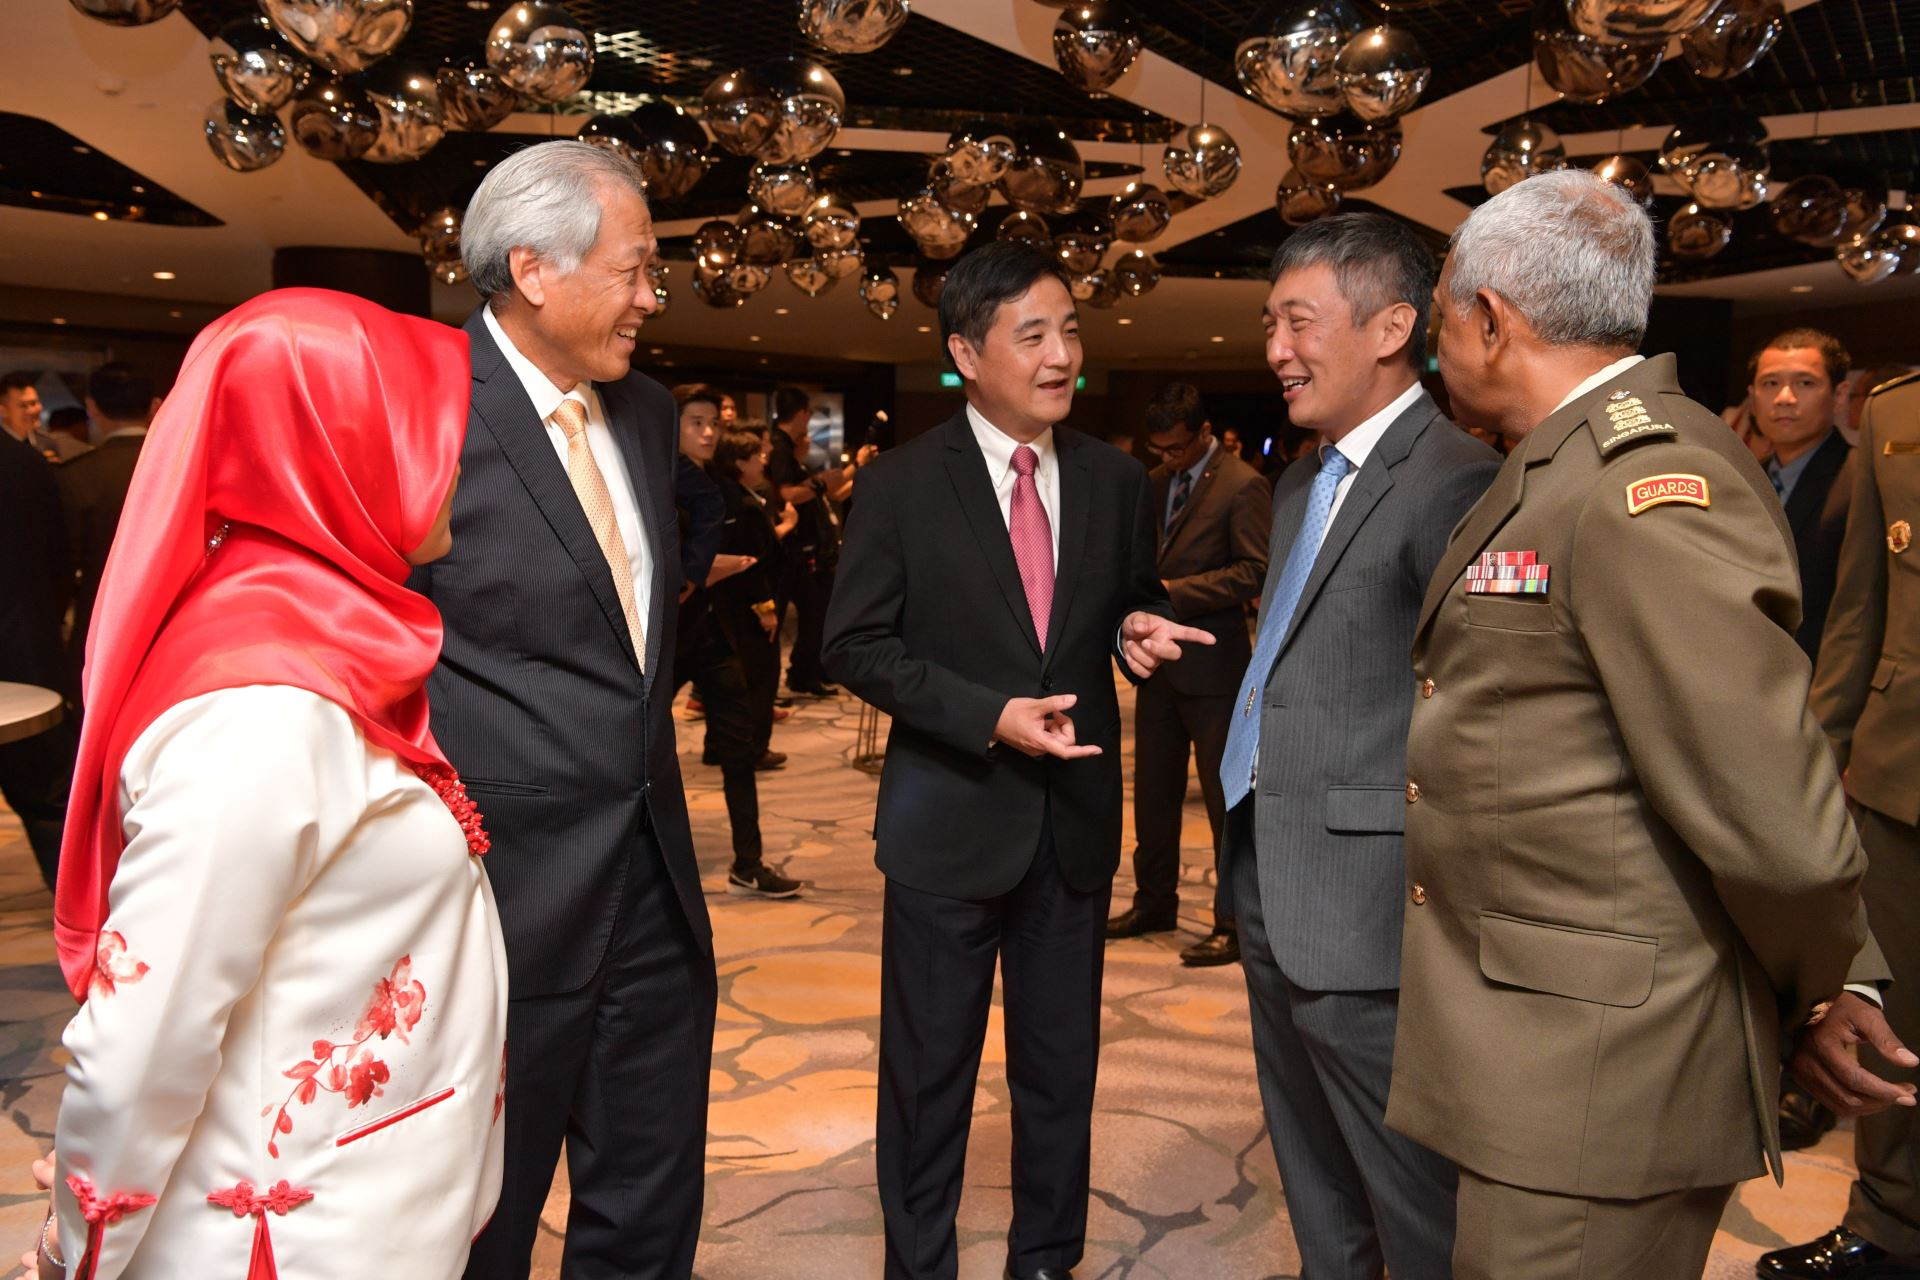 Dr Ng (second from left) and Senior Minister of State for Defence Mr Heng Chee How (second from right) interacting with guests at the TDA Dinner 2018.